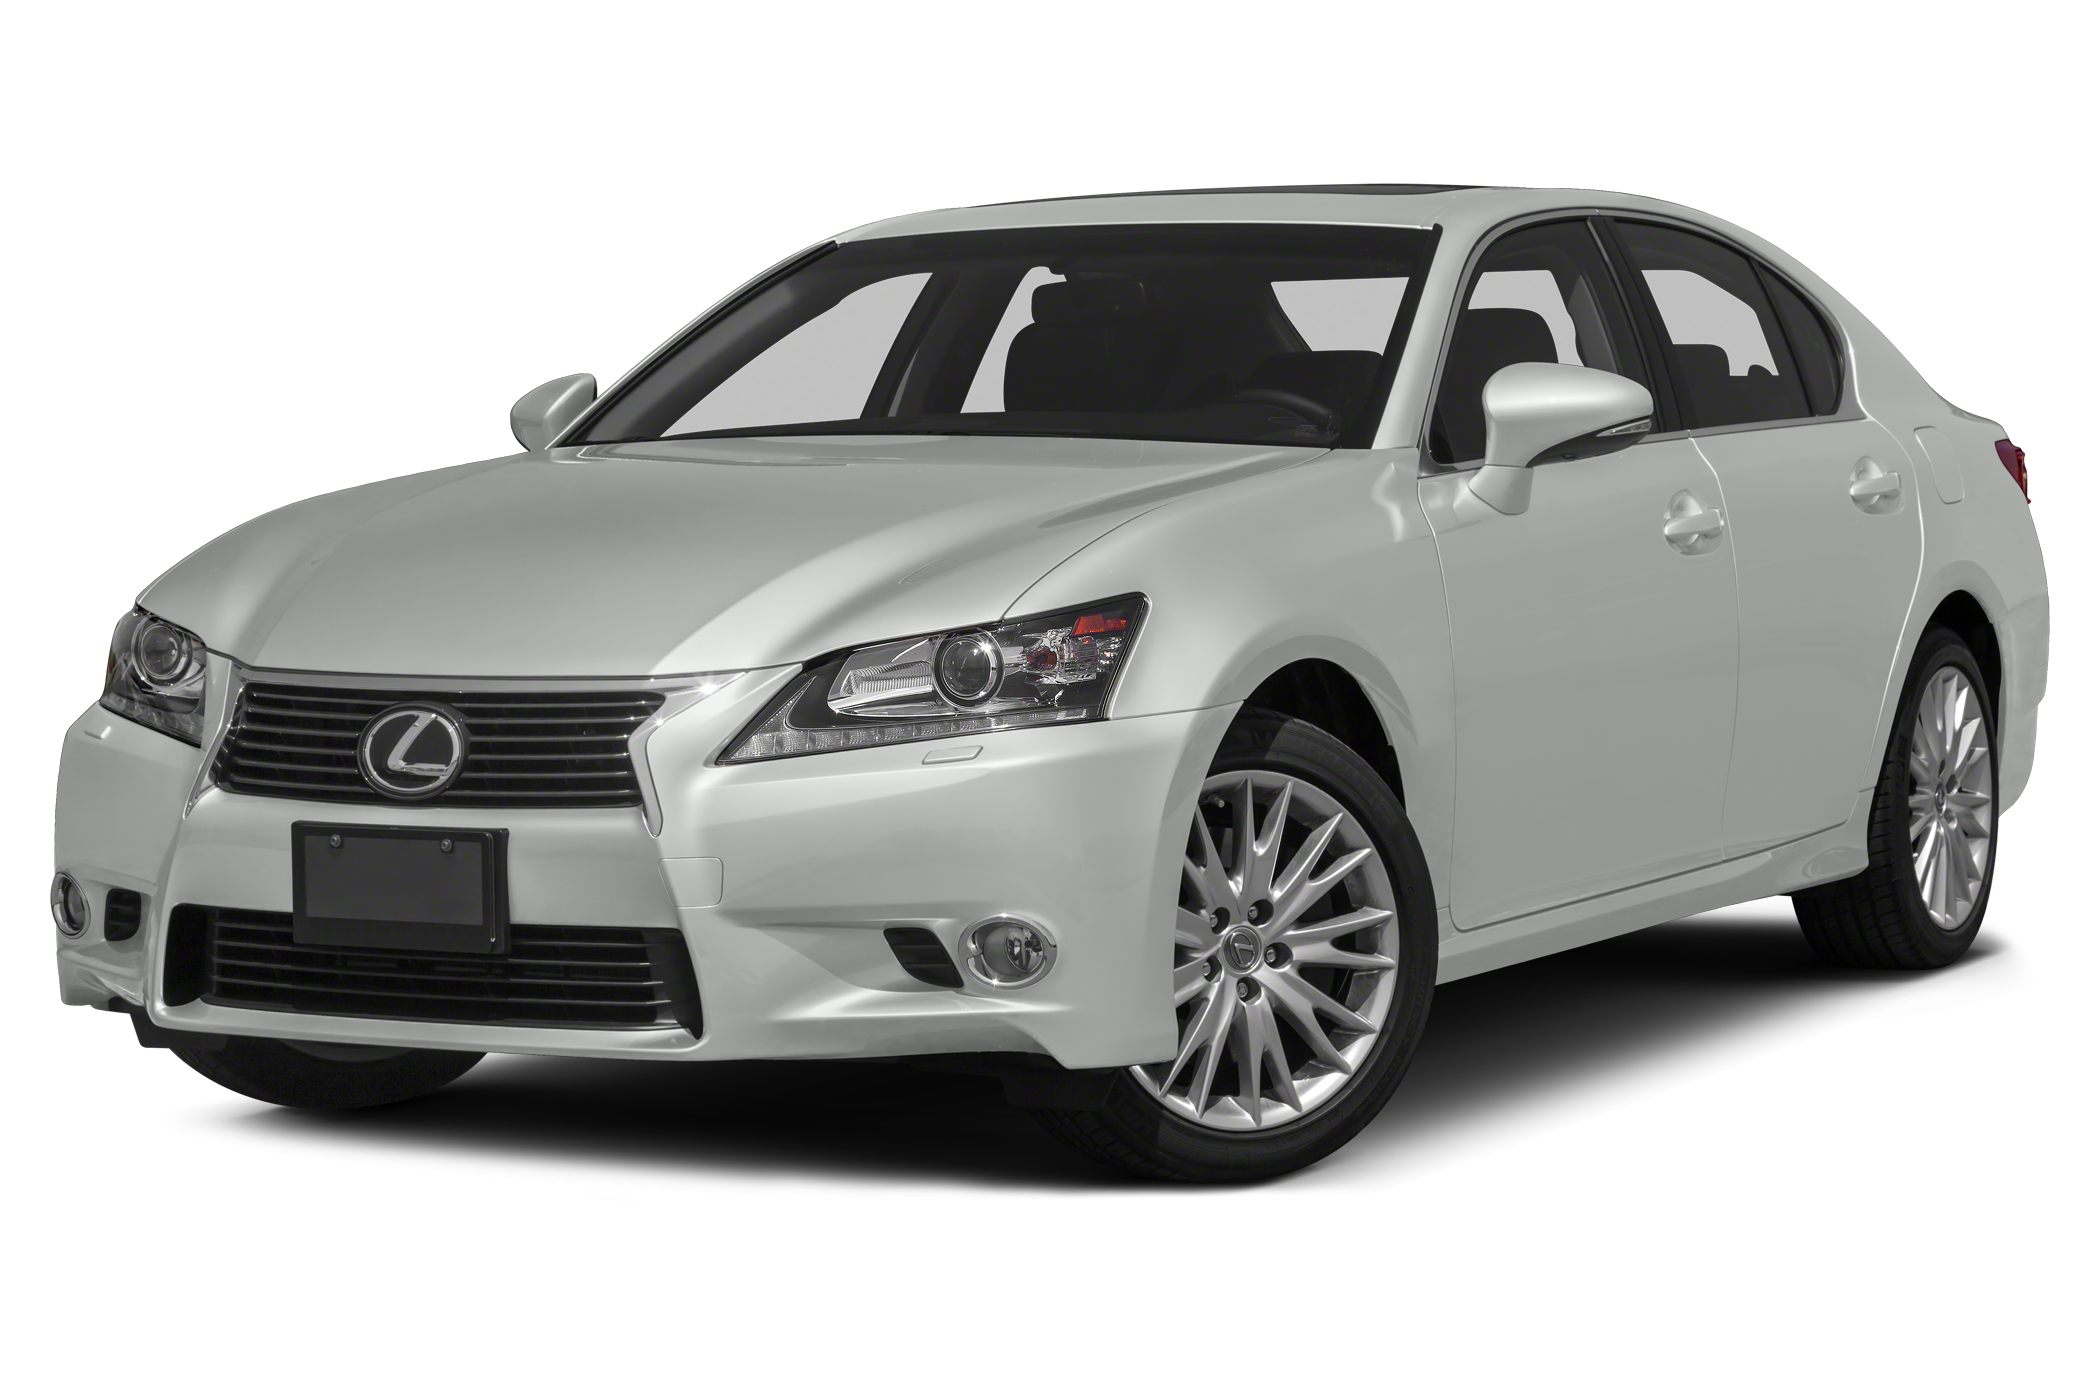 2013 Lexus GS 350 Base Sedan for sale in Pembroke Pines for $37,988 with 21,512 miles.